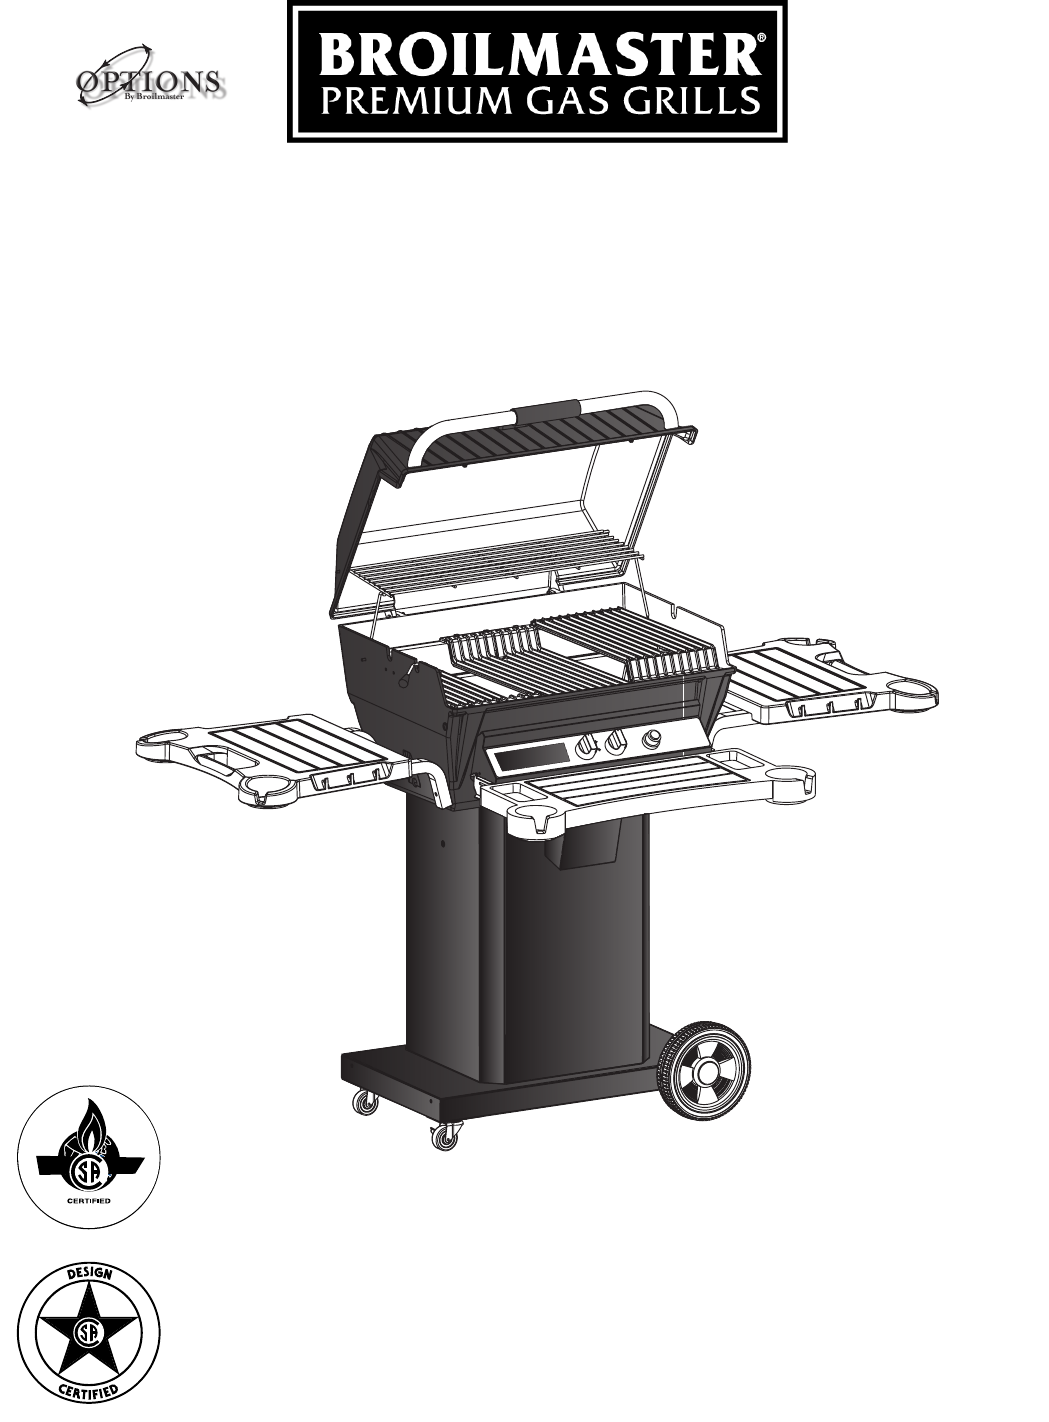 Broilmaster Gas Grill D3-1 User Guide | ManualsOnline.com